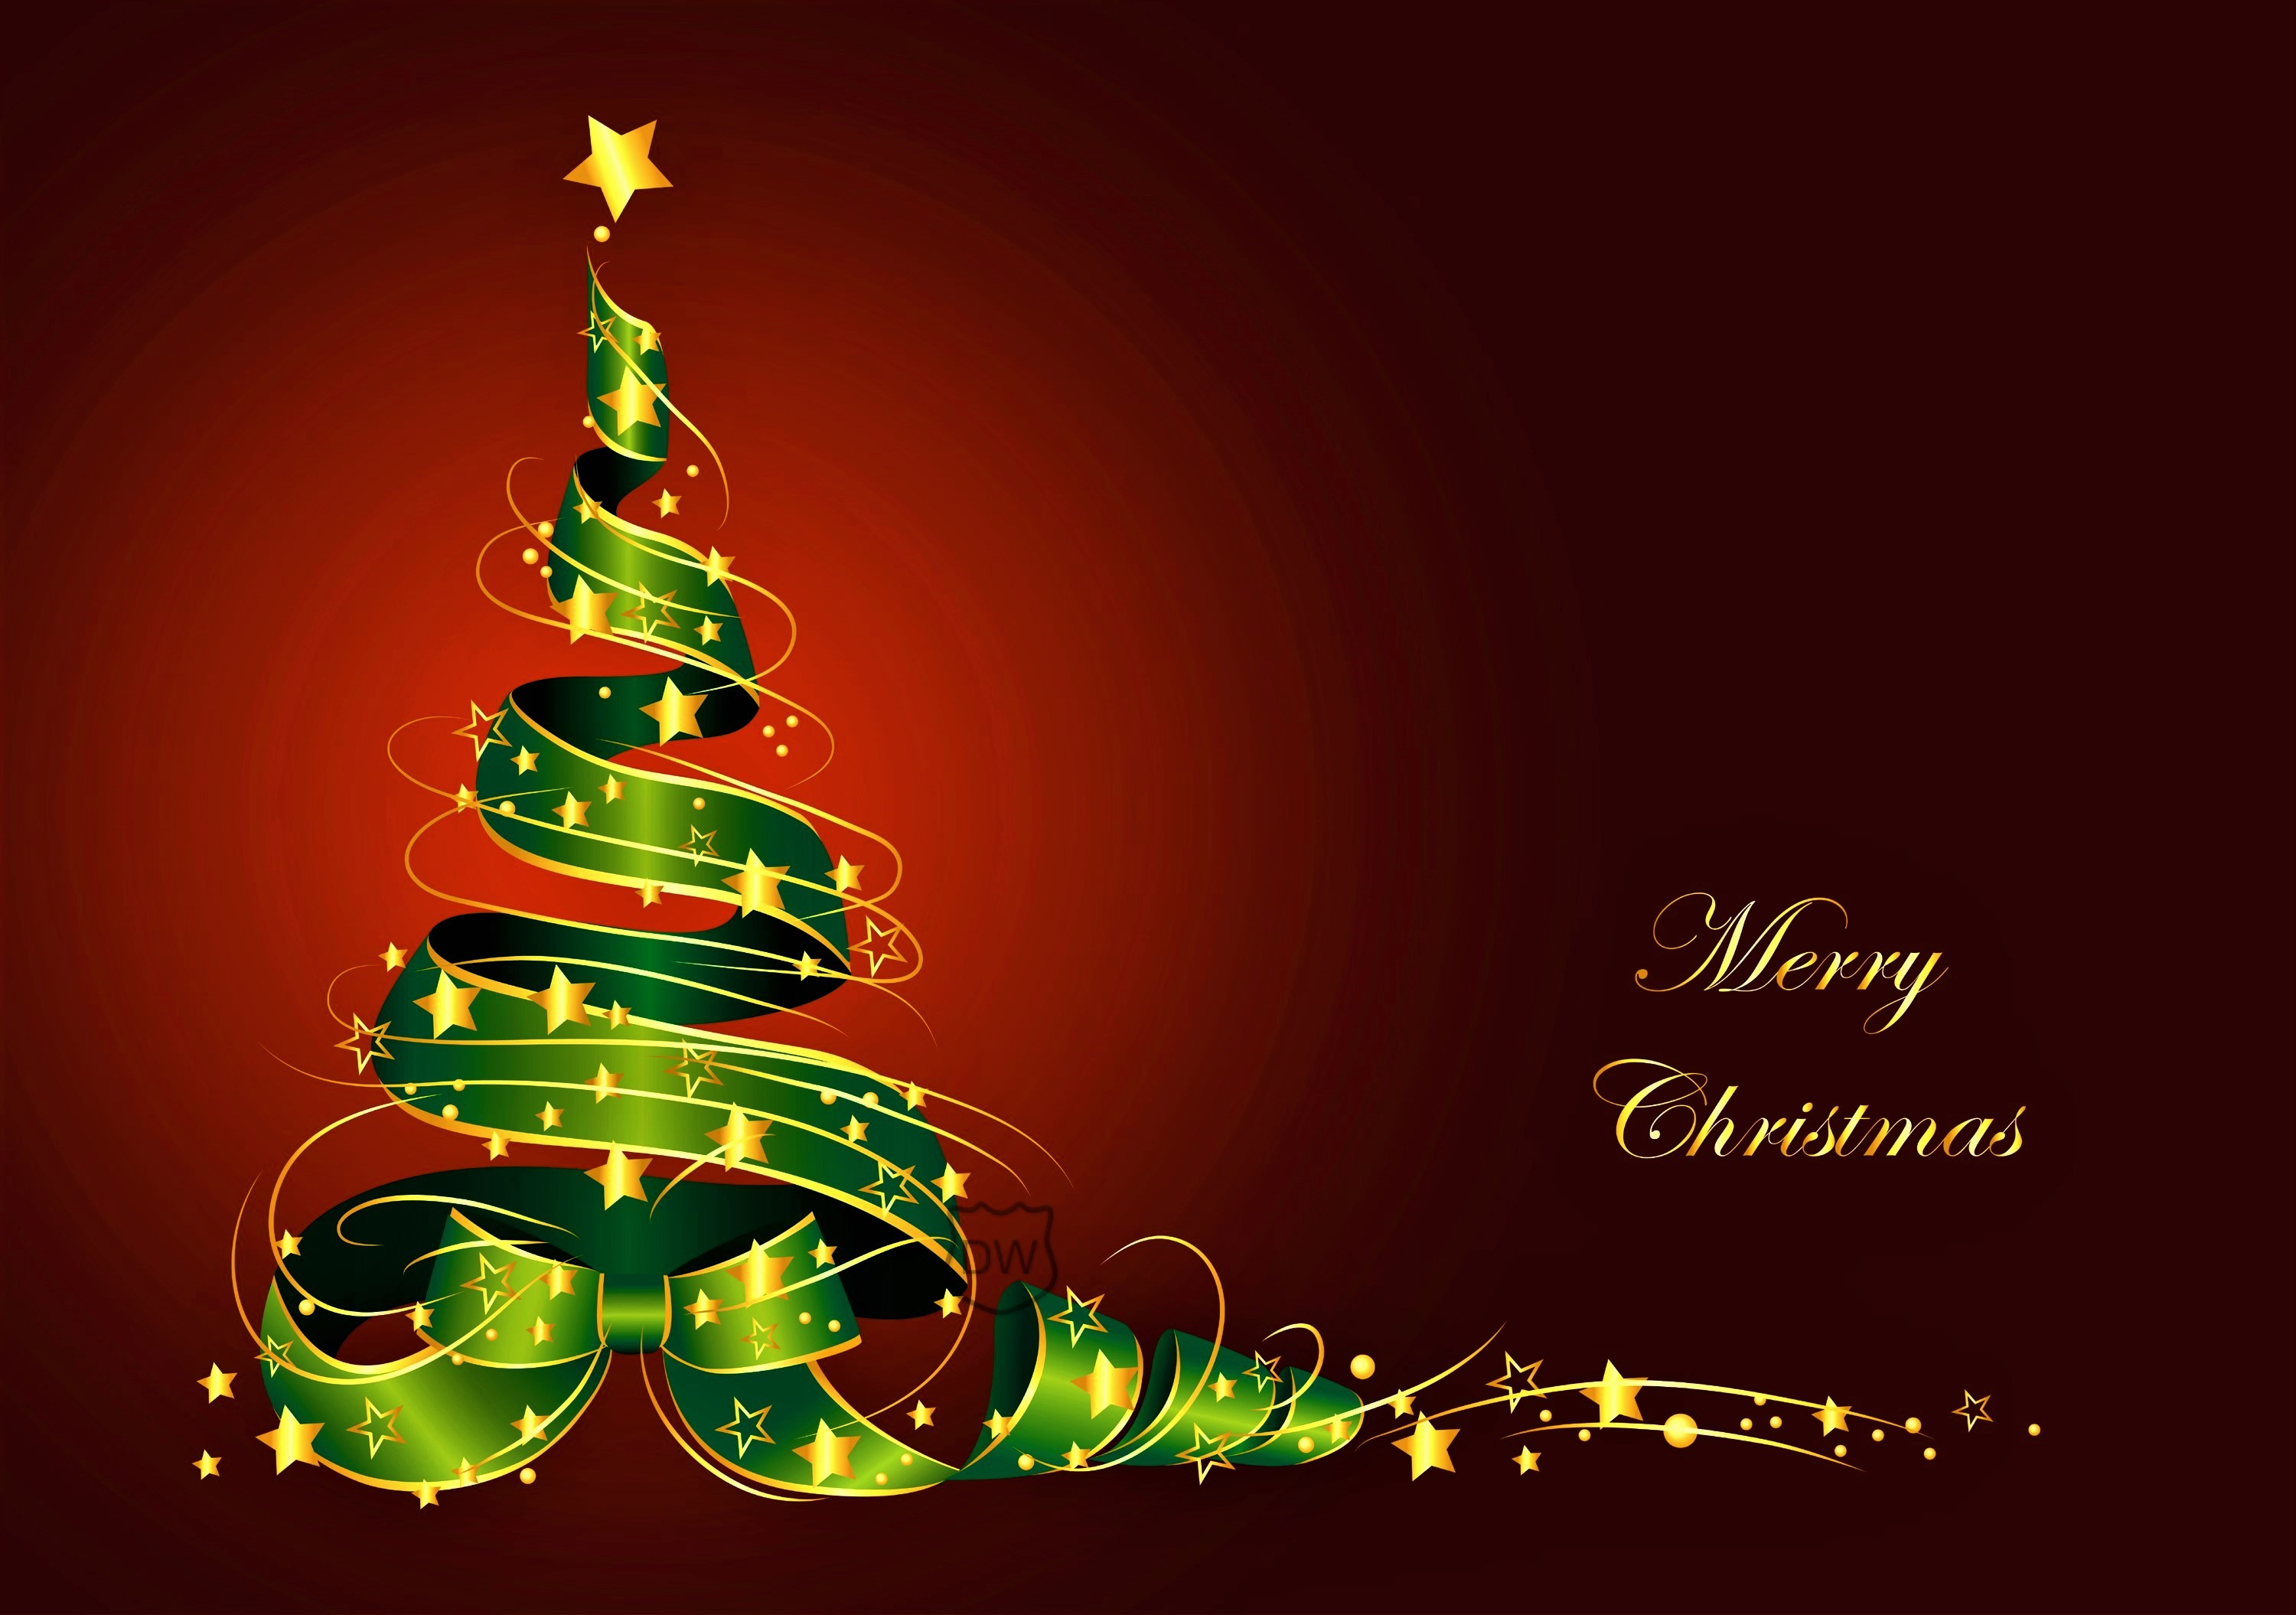 Merry Christmas Hd Wallpaper.Merry Christmas Hd Wallpaper Background Image 3000x2110